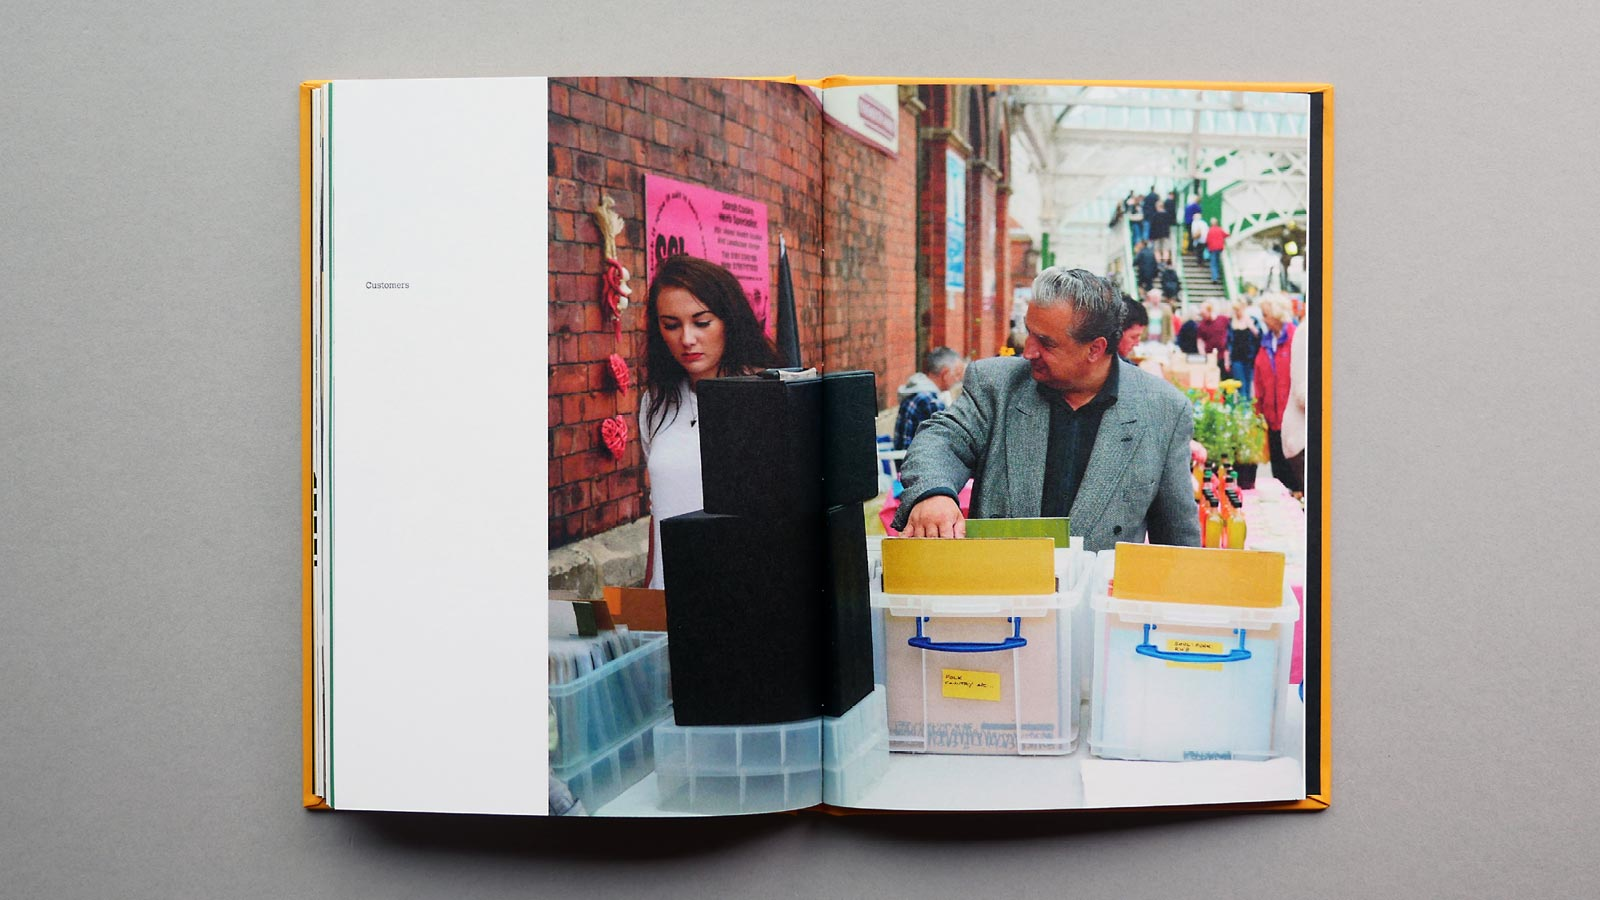 photography-design-picture-book-hard-case-bound-typography-spread-5-milton-keynes-london